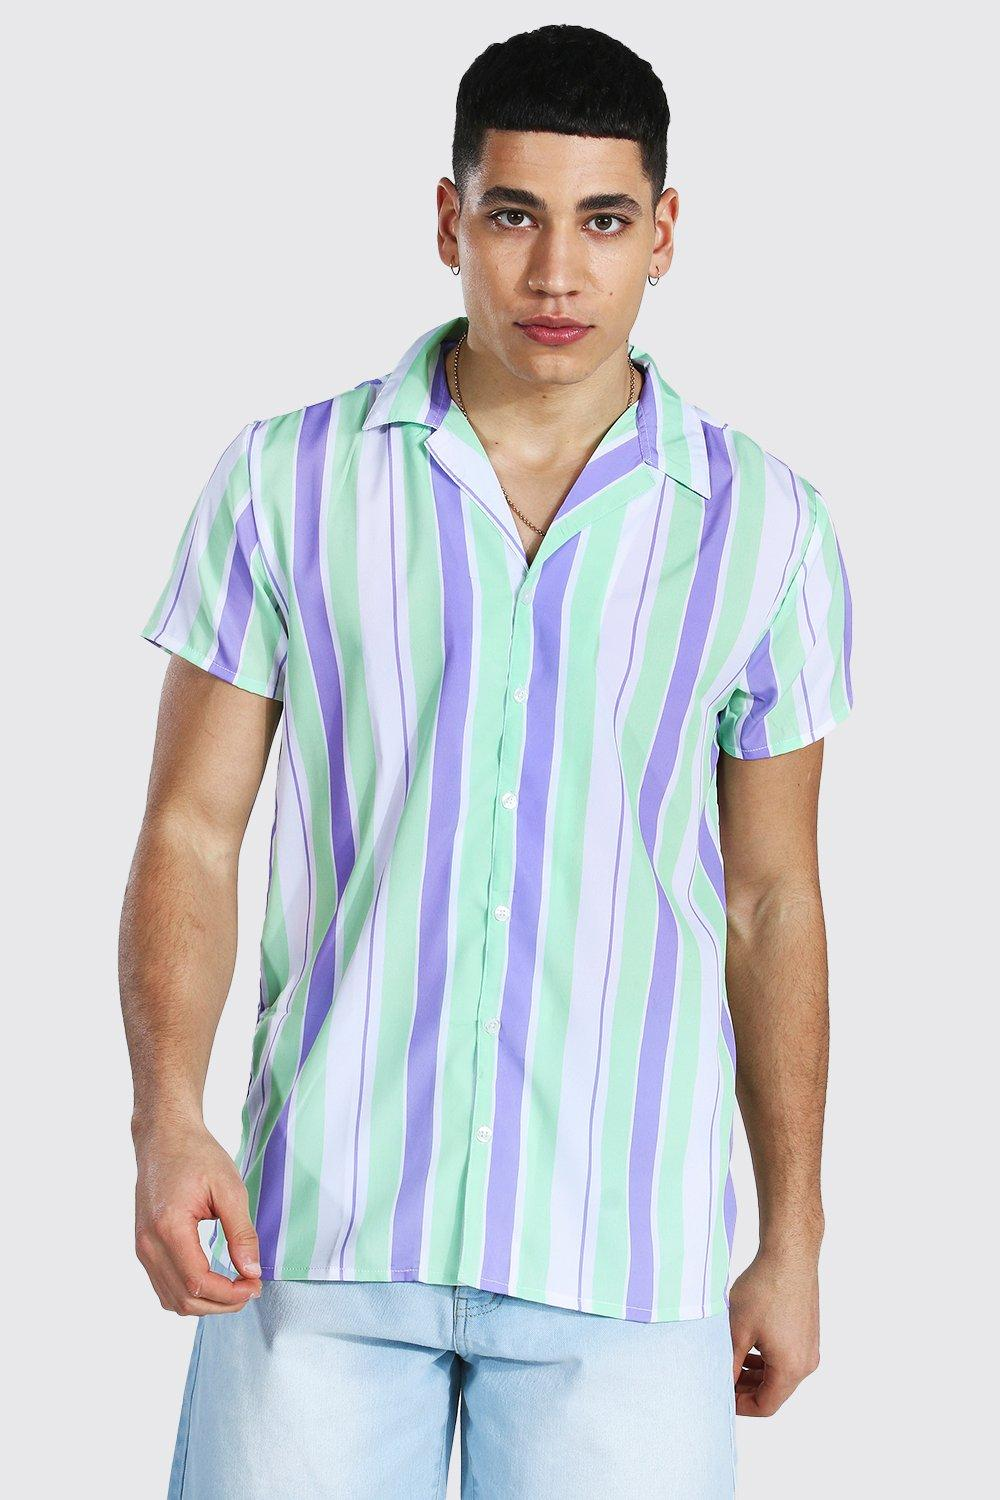 1960s Mens Shirts | 60s Mod Shirts, Hippie Shirts Mens Short Sleeve Revere Stripe Shirt - Purple $18.00 AT vintagedancer.com